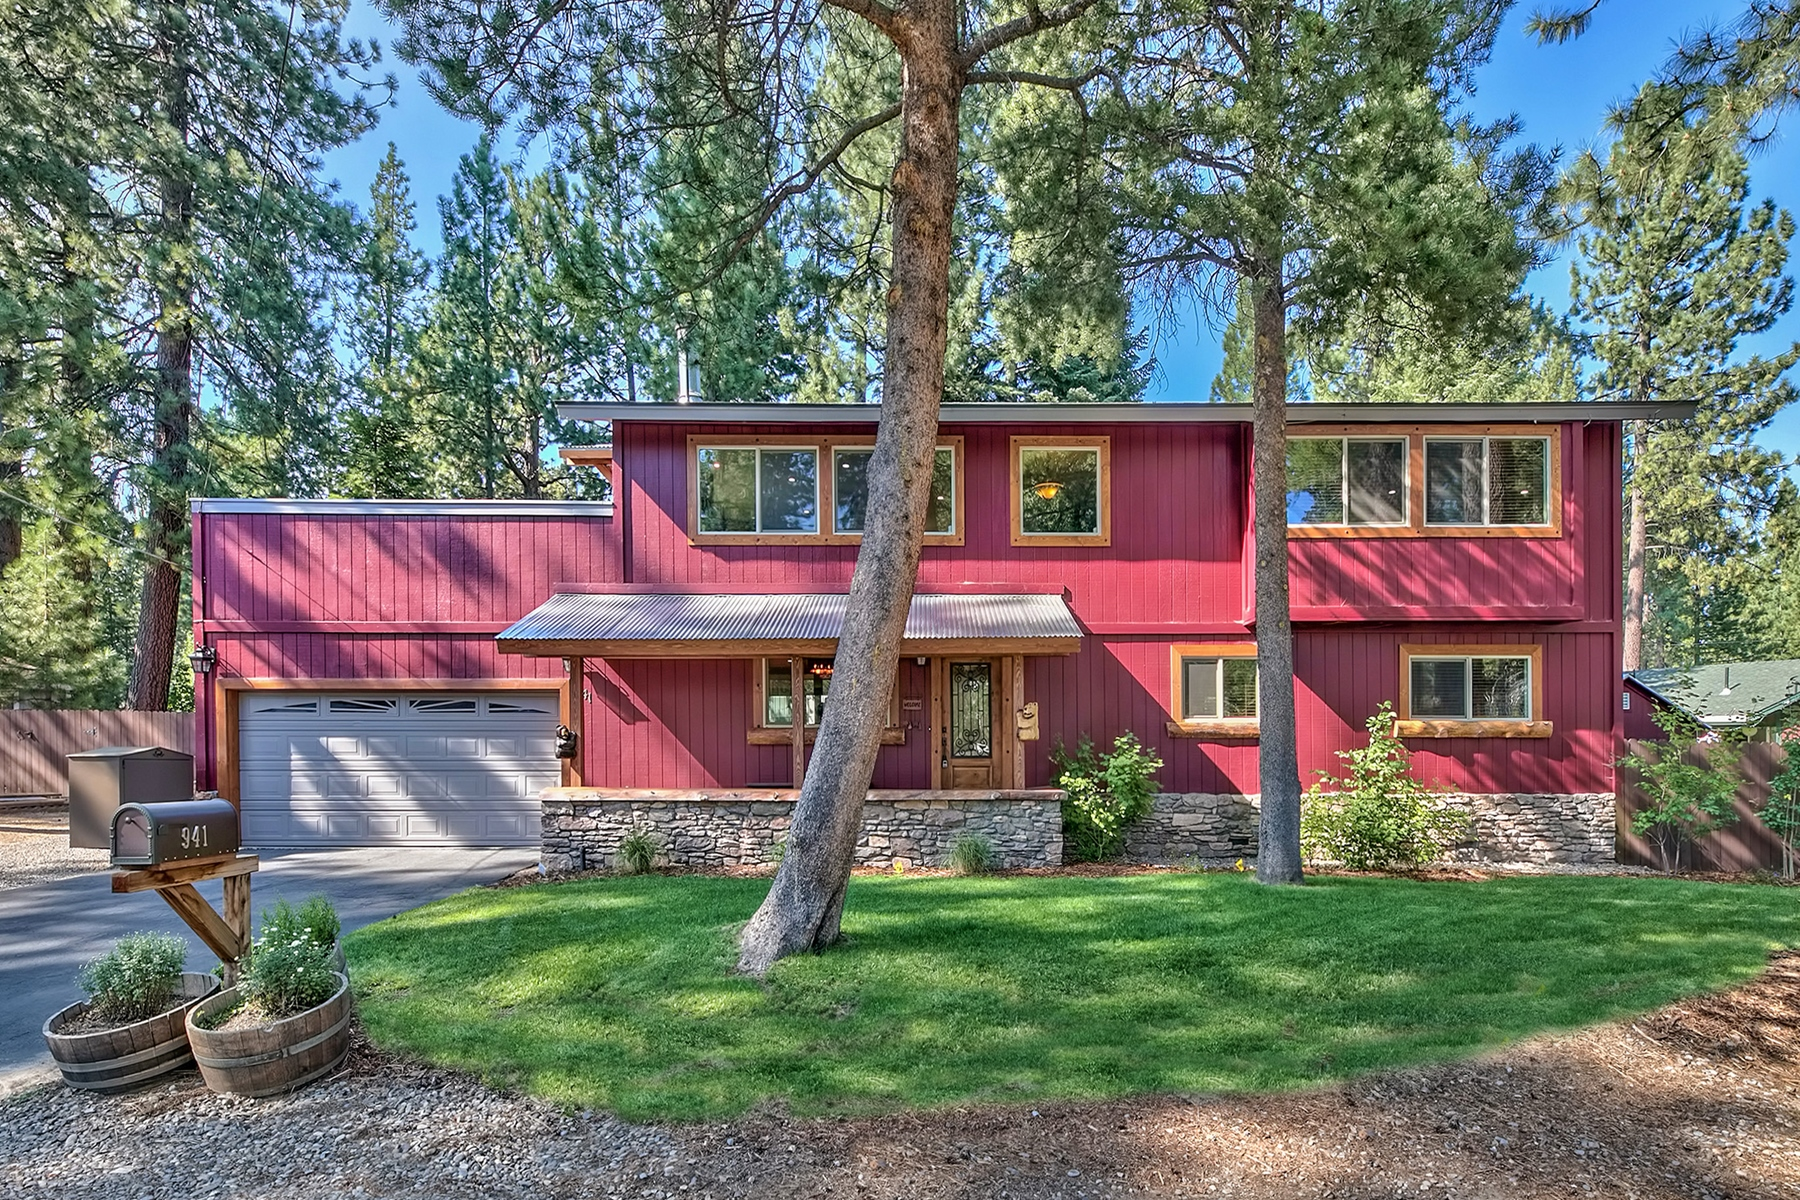 Property for Active at 941 Patricia Lane, South Lake Tahoe, CA 96150 941 Patricia Lane South Lake Tahoe, California 96150 United States